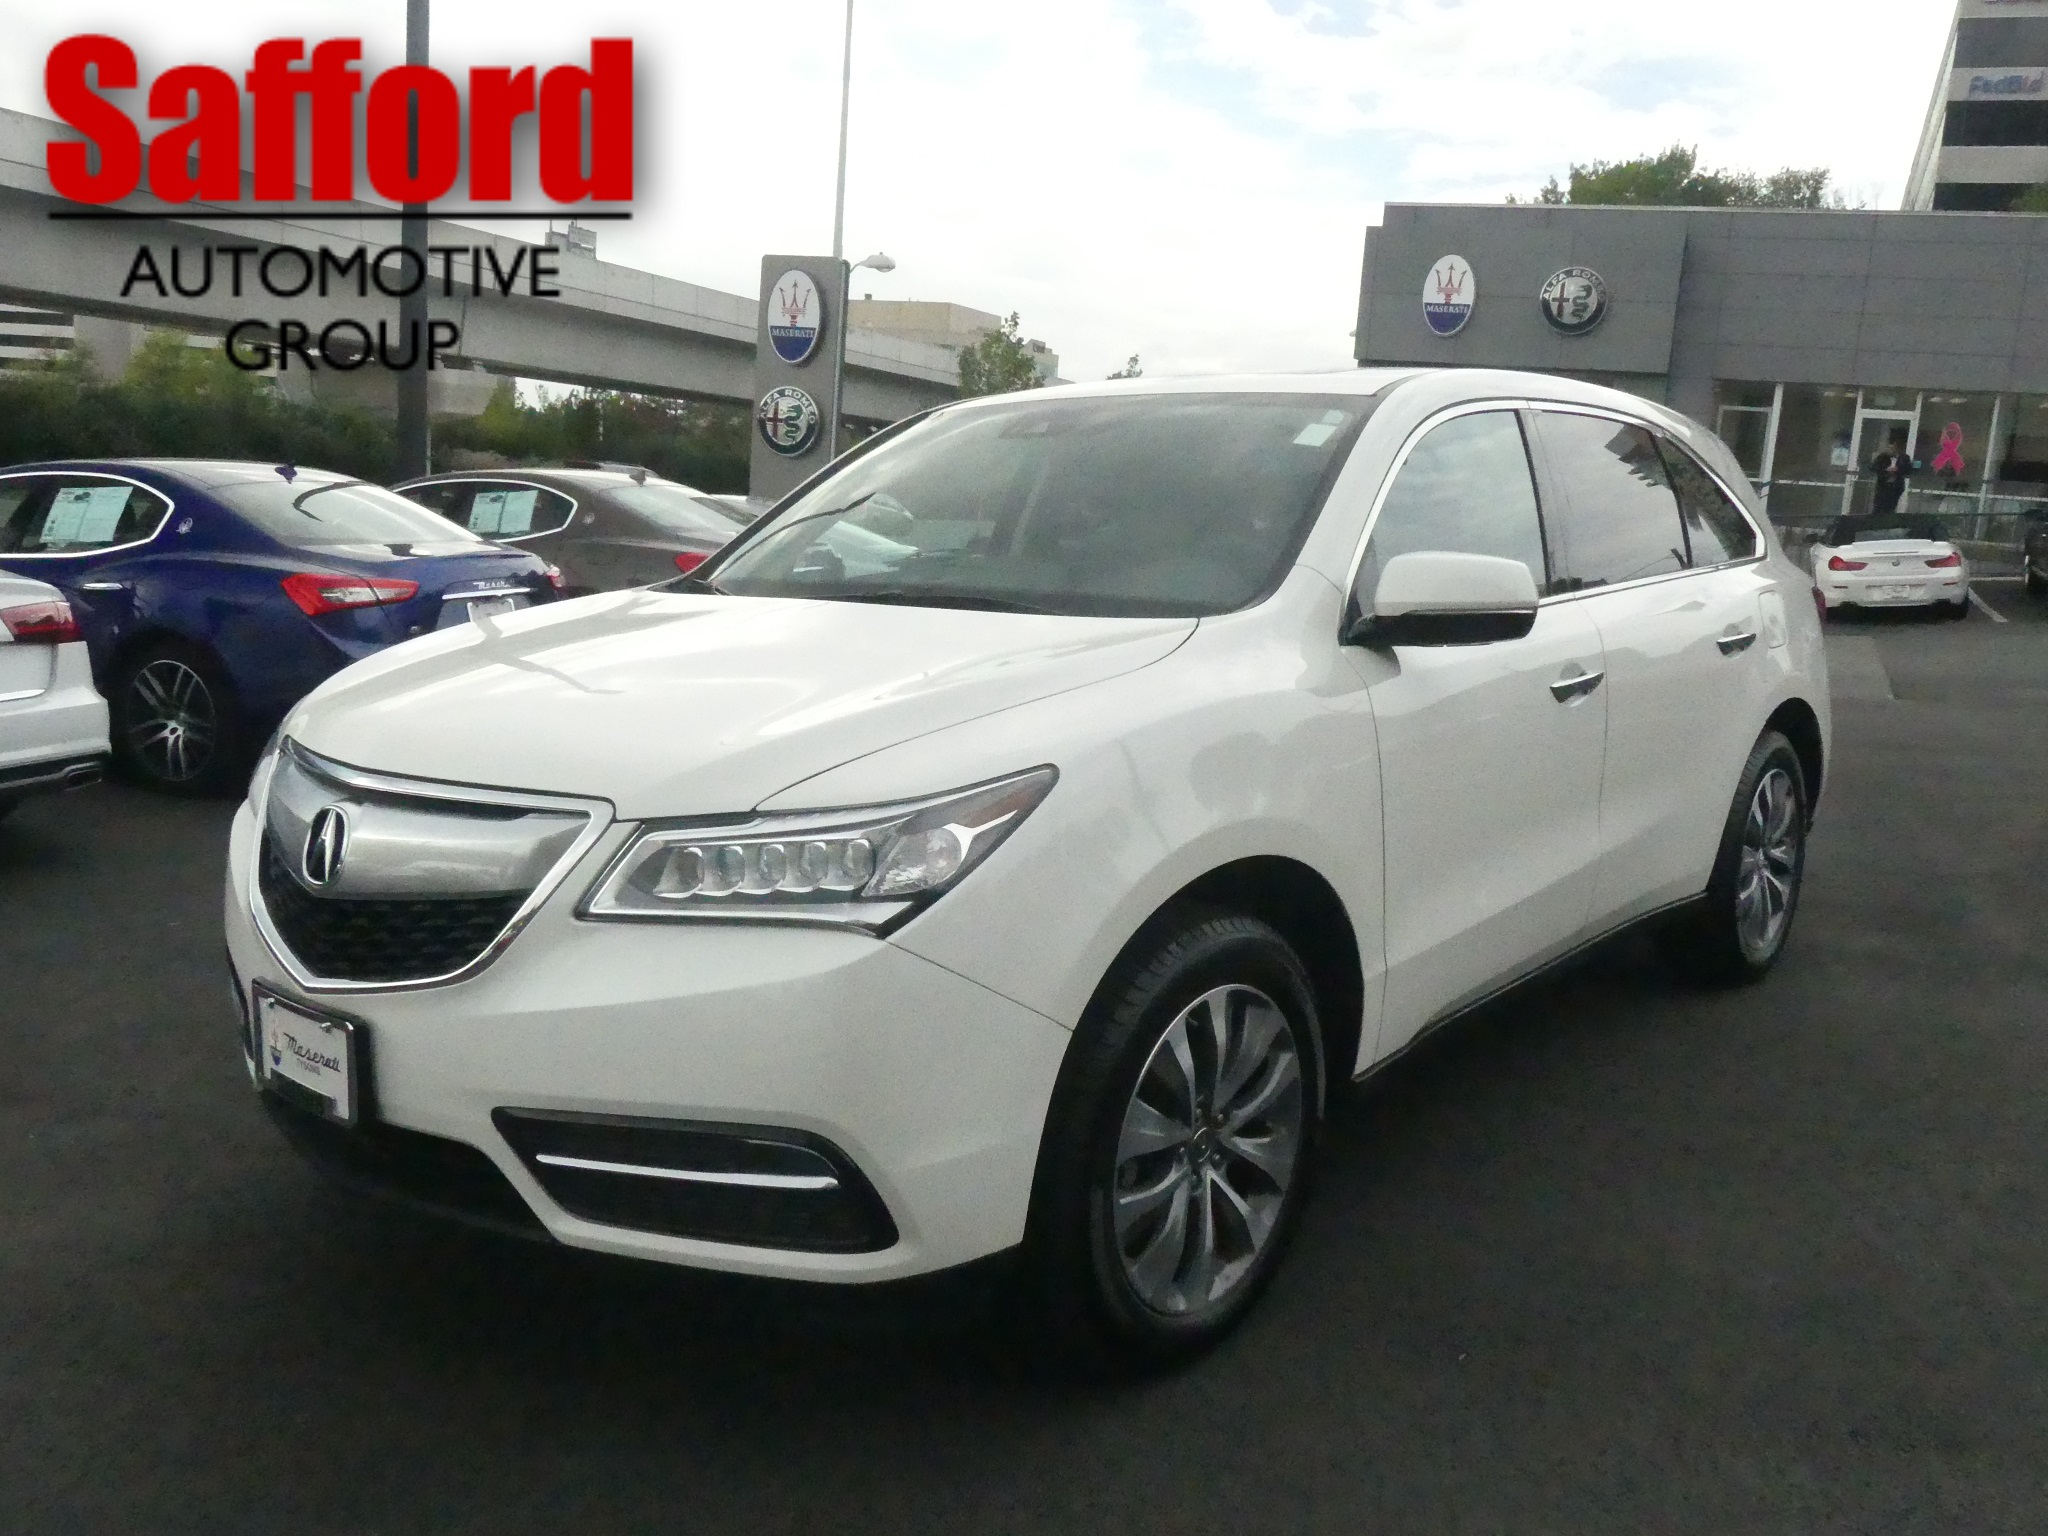 PreOwned Acura MDX Sport Utility In Salisbury P Safford - Acura mdx pre owned